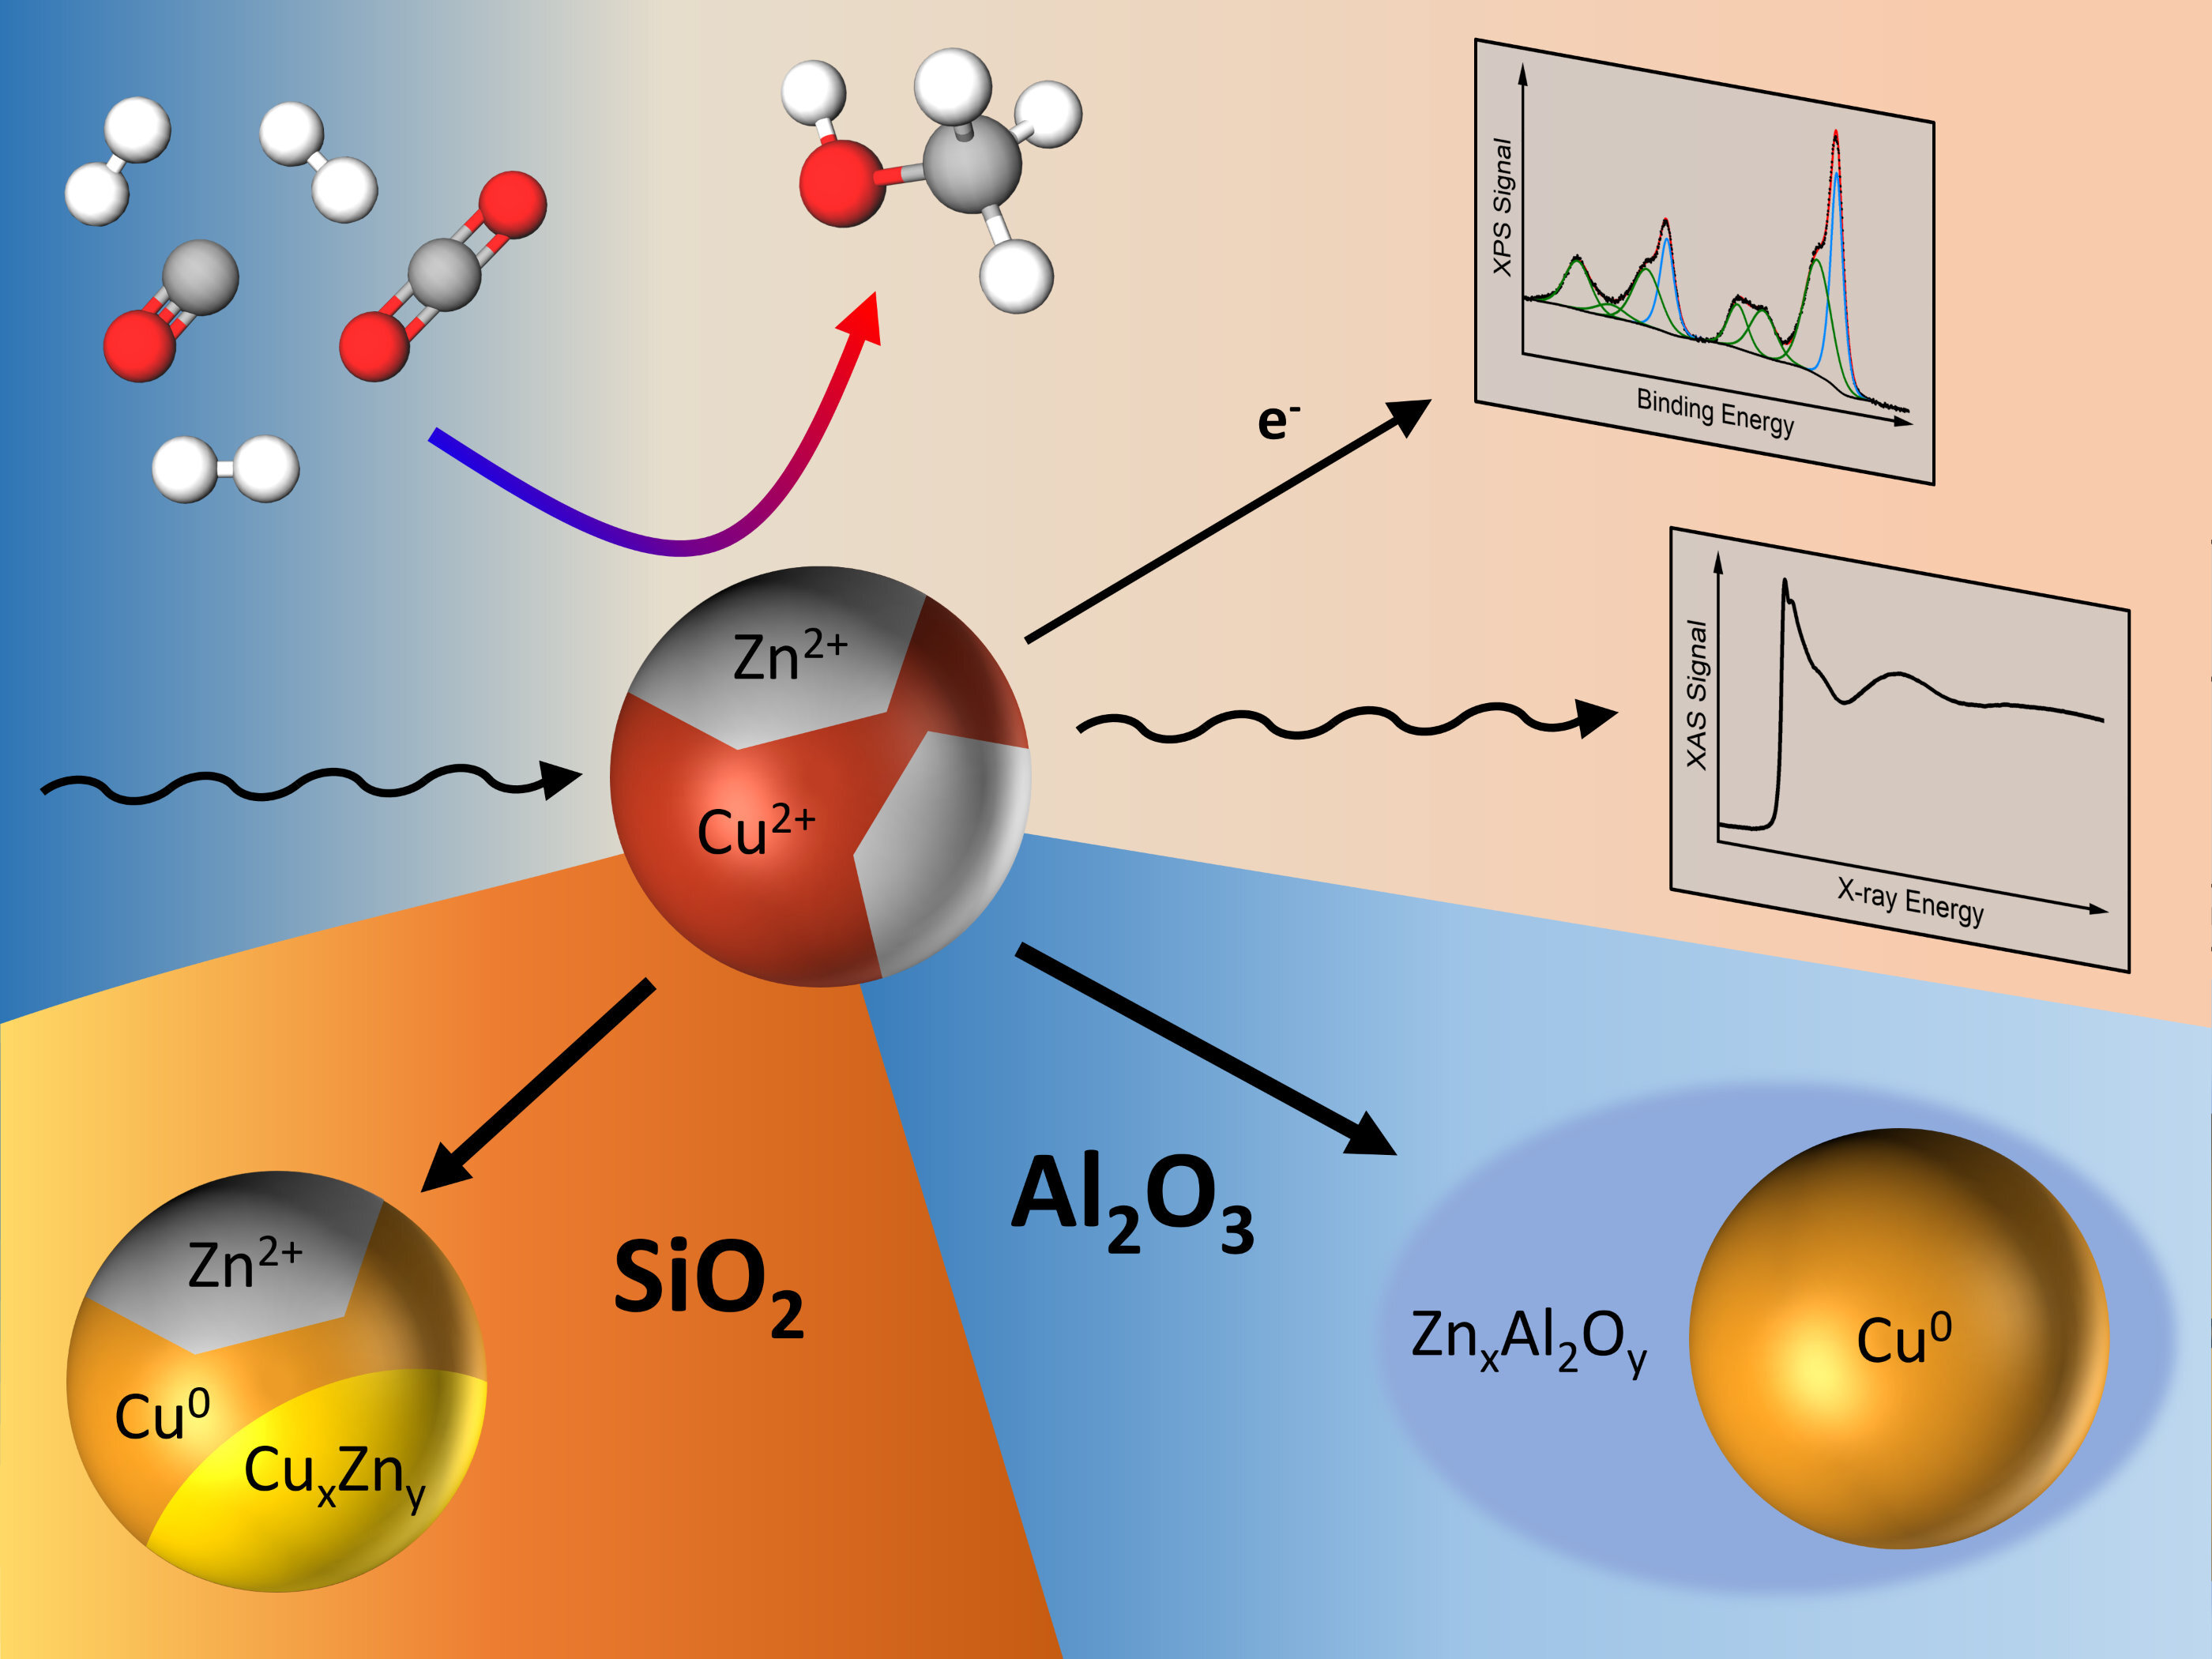 Zinc oxide: Key component for the methanol synthesis reaction over copper catalysts